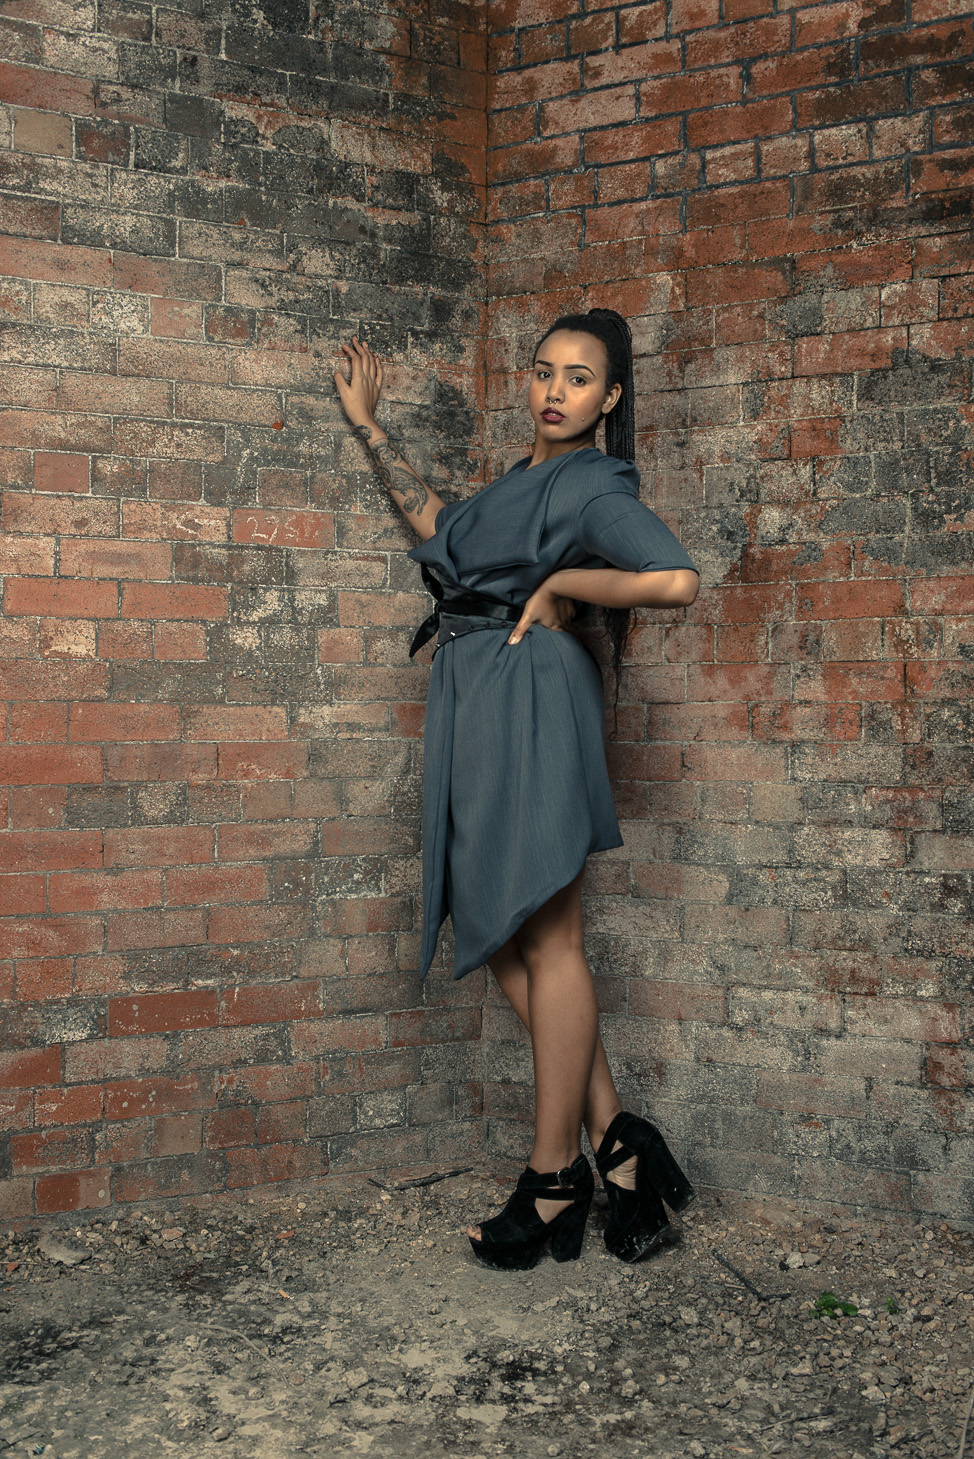 zaramia-ava-zaramiaava-leeds-fashion-designer-ethical-sustainable-tailored-minimalist-dress-jacket-versatile-drape-grey-bodysuit-black-obi-belt-wrap-cowl-styling-womenswear-models-photoshoot-22